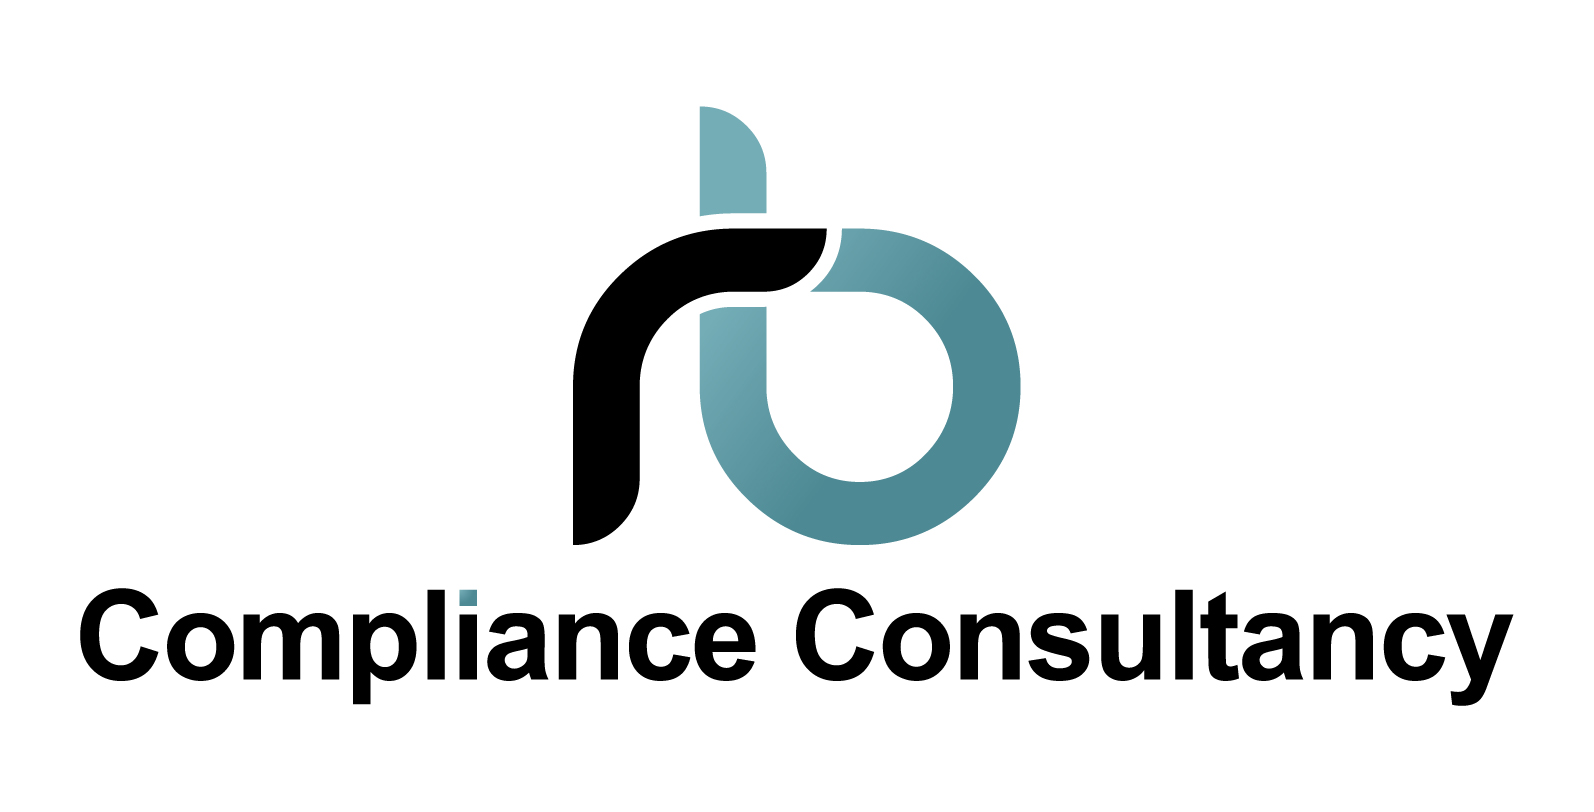 RB Compliance Consultancy